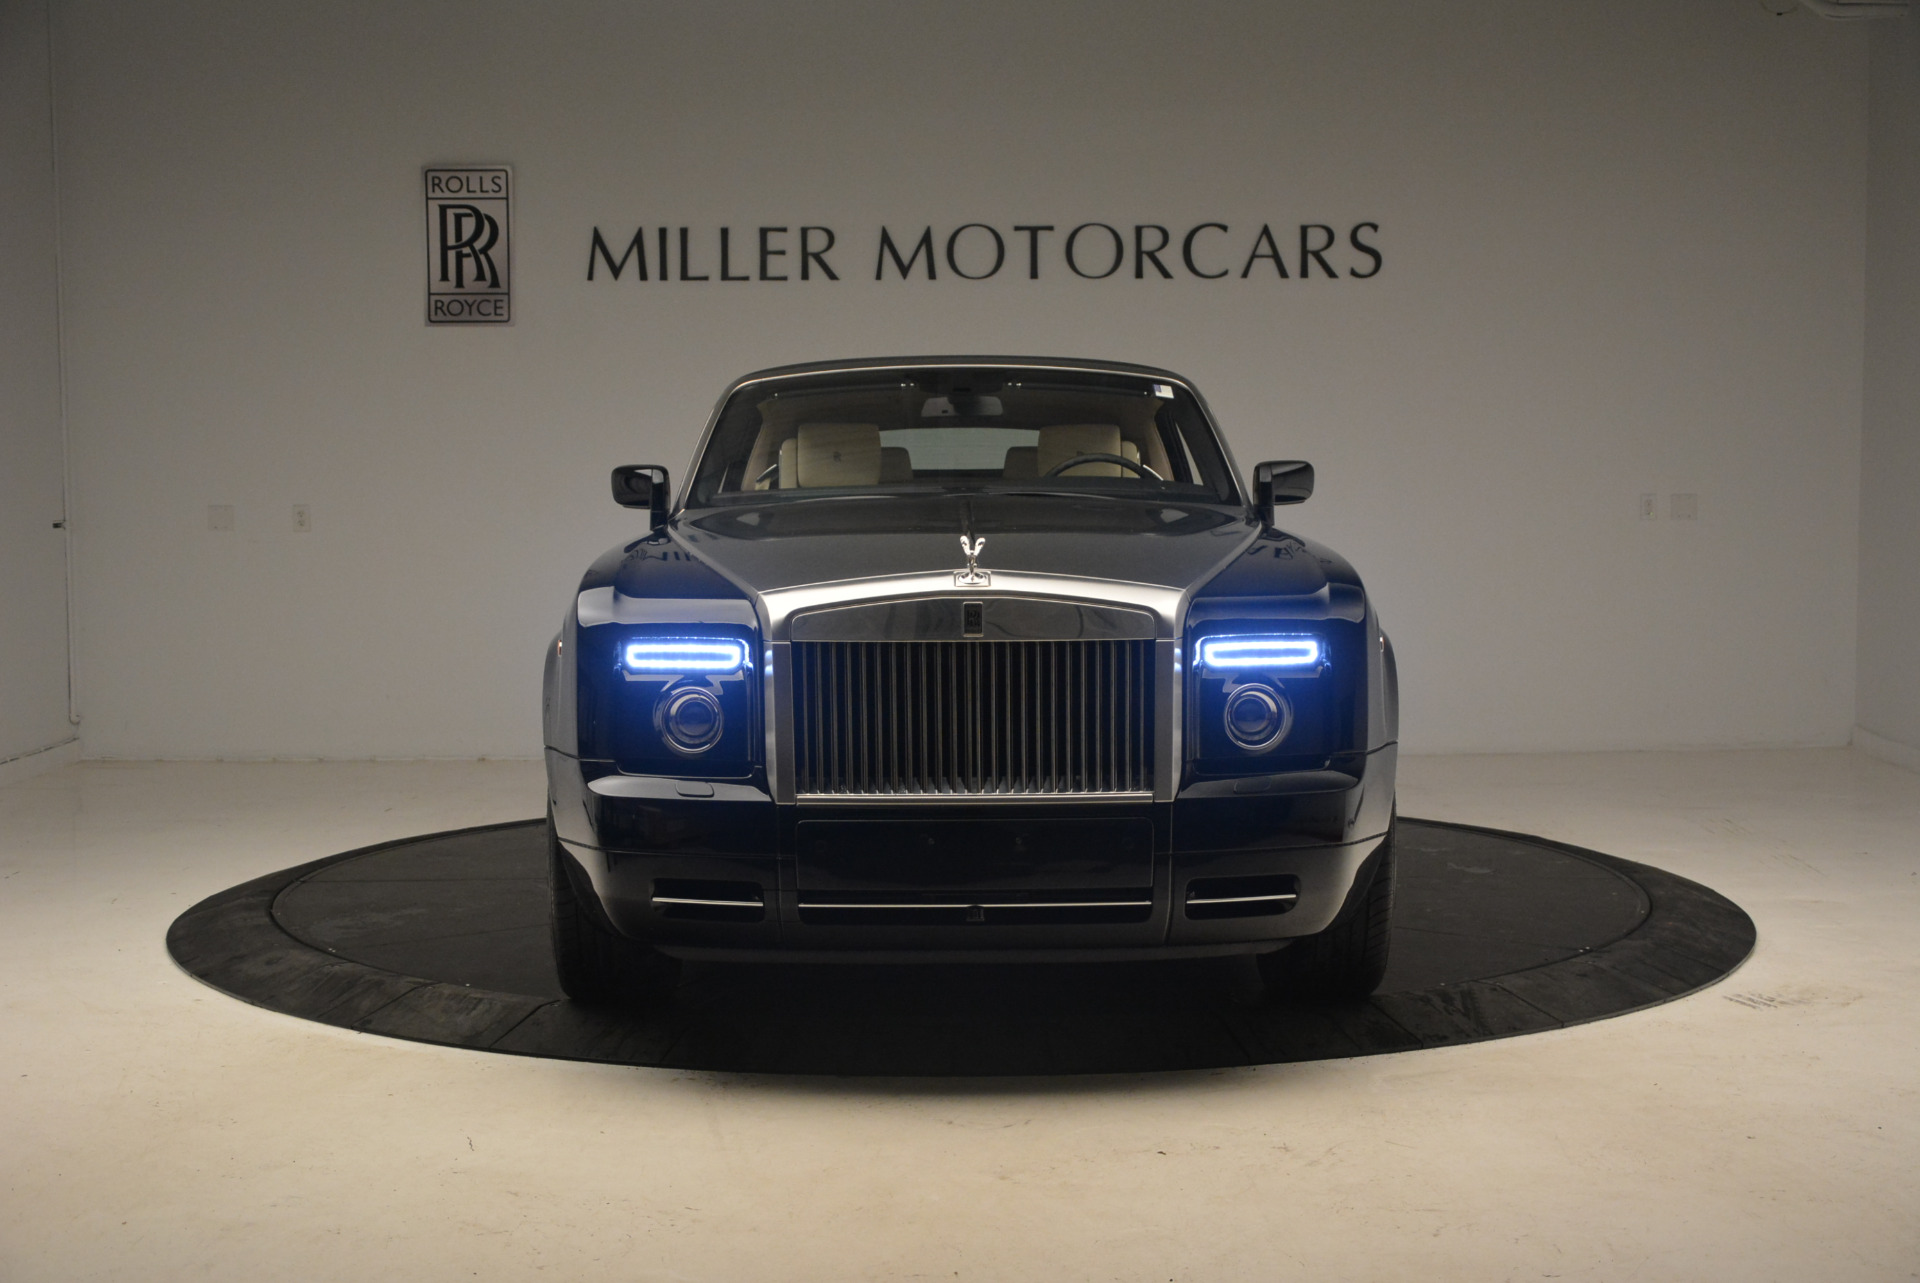 Used 2009 Rolls-Royce Phantom Drophead Coupe  For Sale In Greenwich, CT 1792_p25